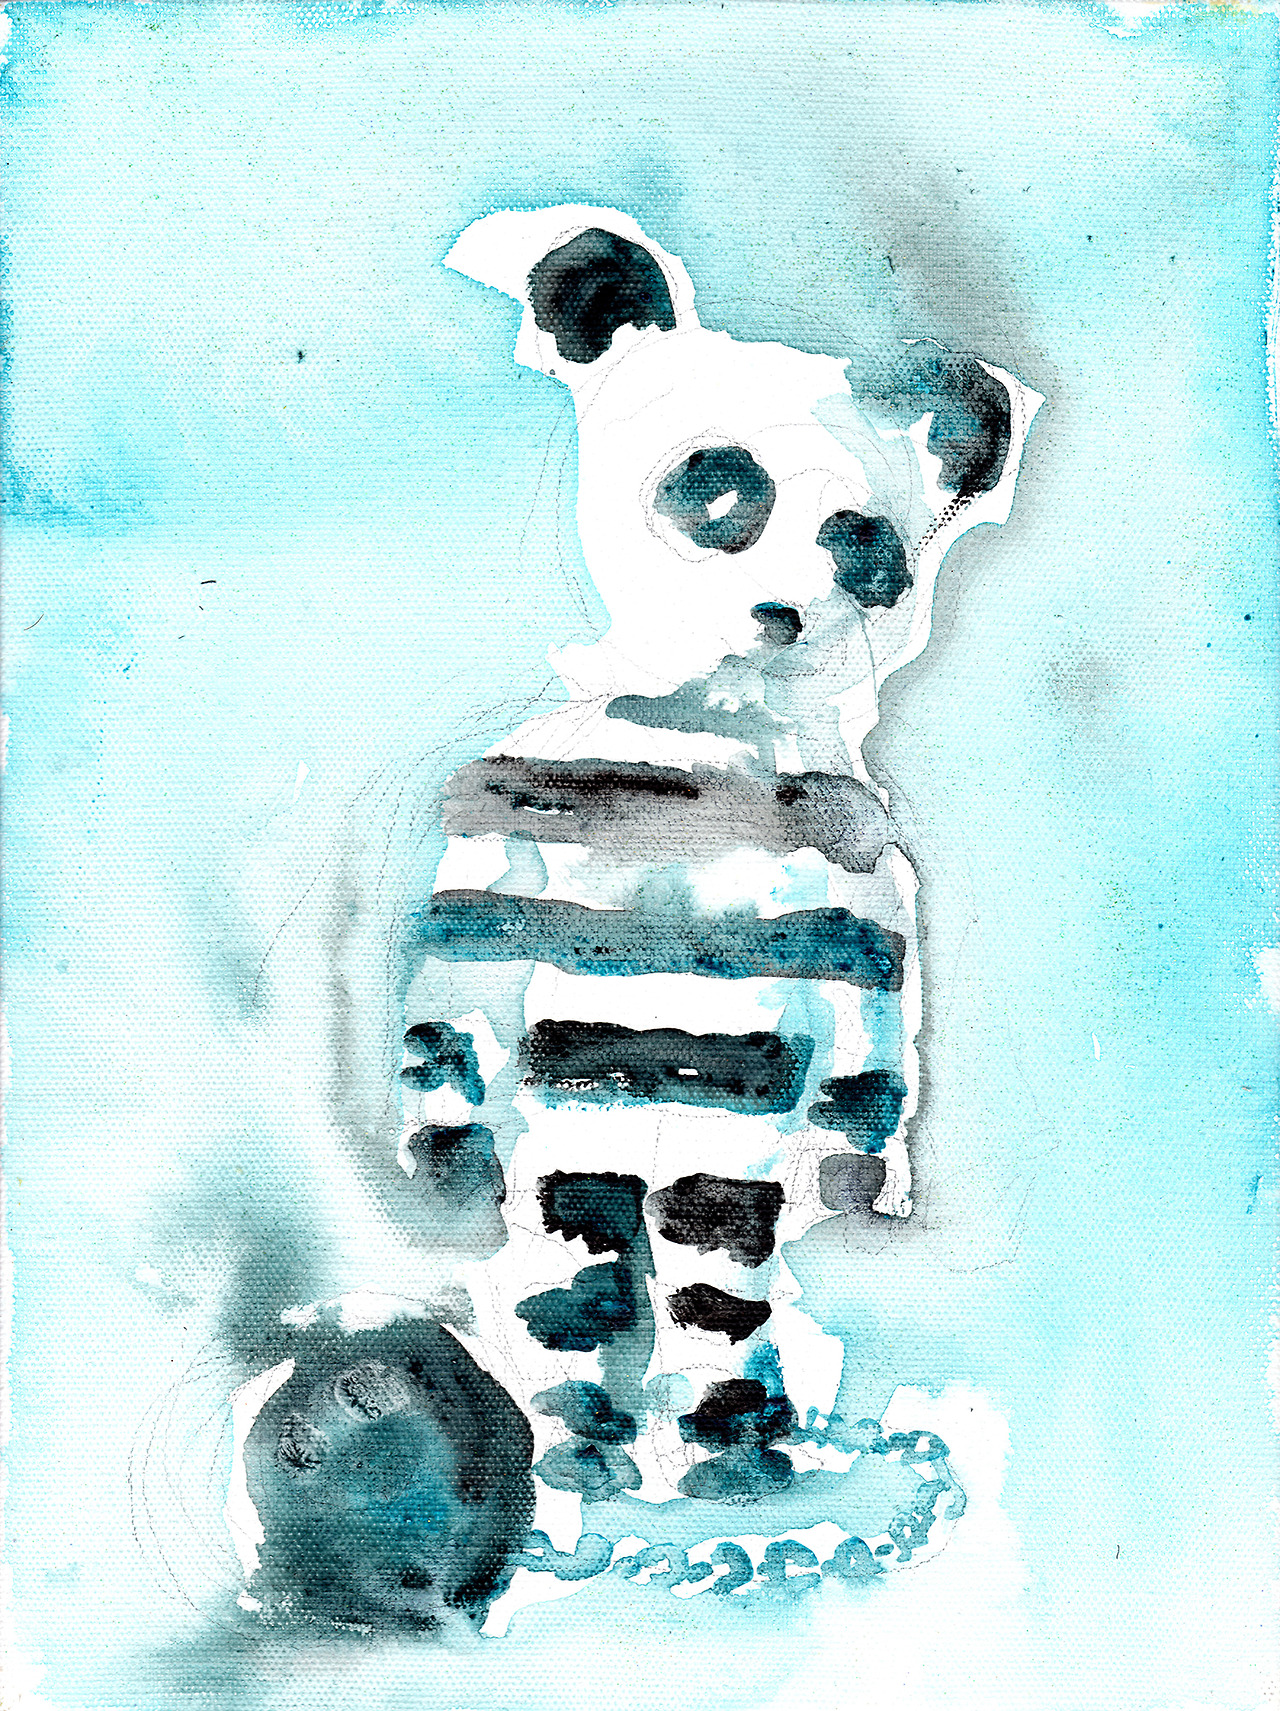 9/12/13 -  Sad Panda.    I imagine prison would make a panda pretty sad.    Buy it here -  http://taylorwinder.bigcartel.com    Prints of it here -  http://society6.com/taylorwinder